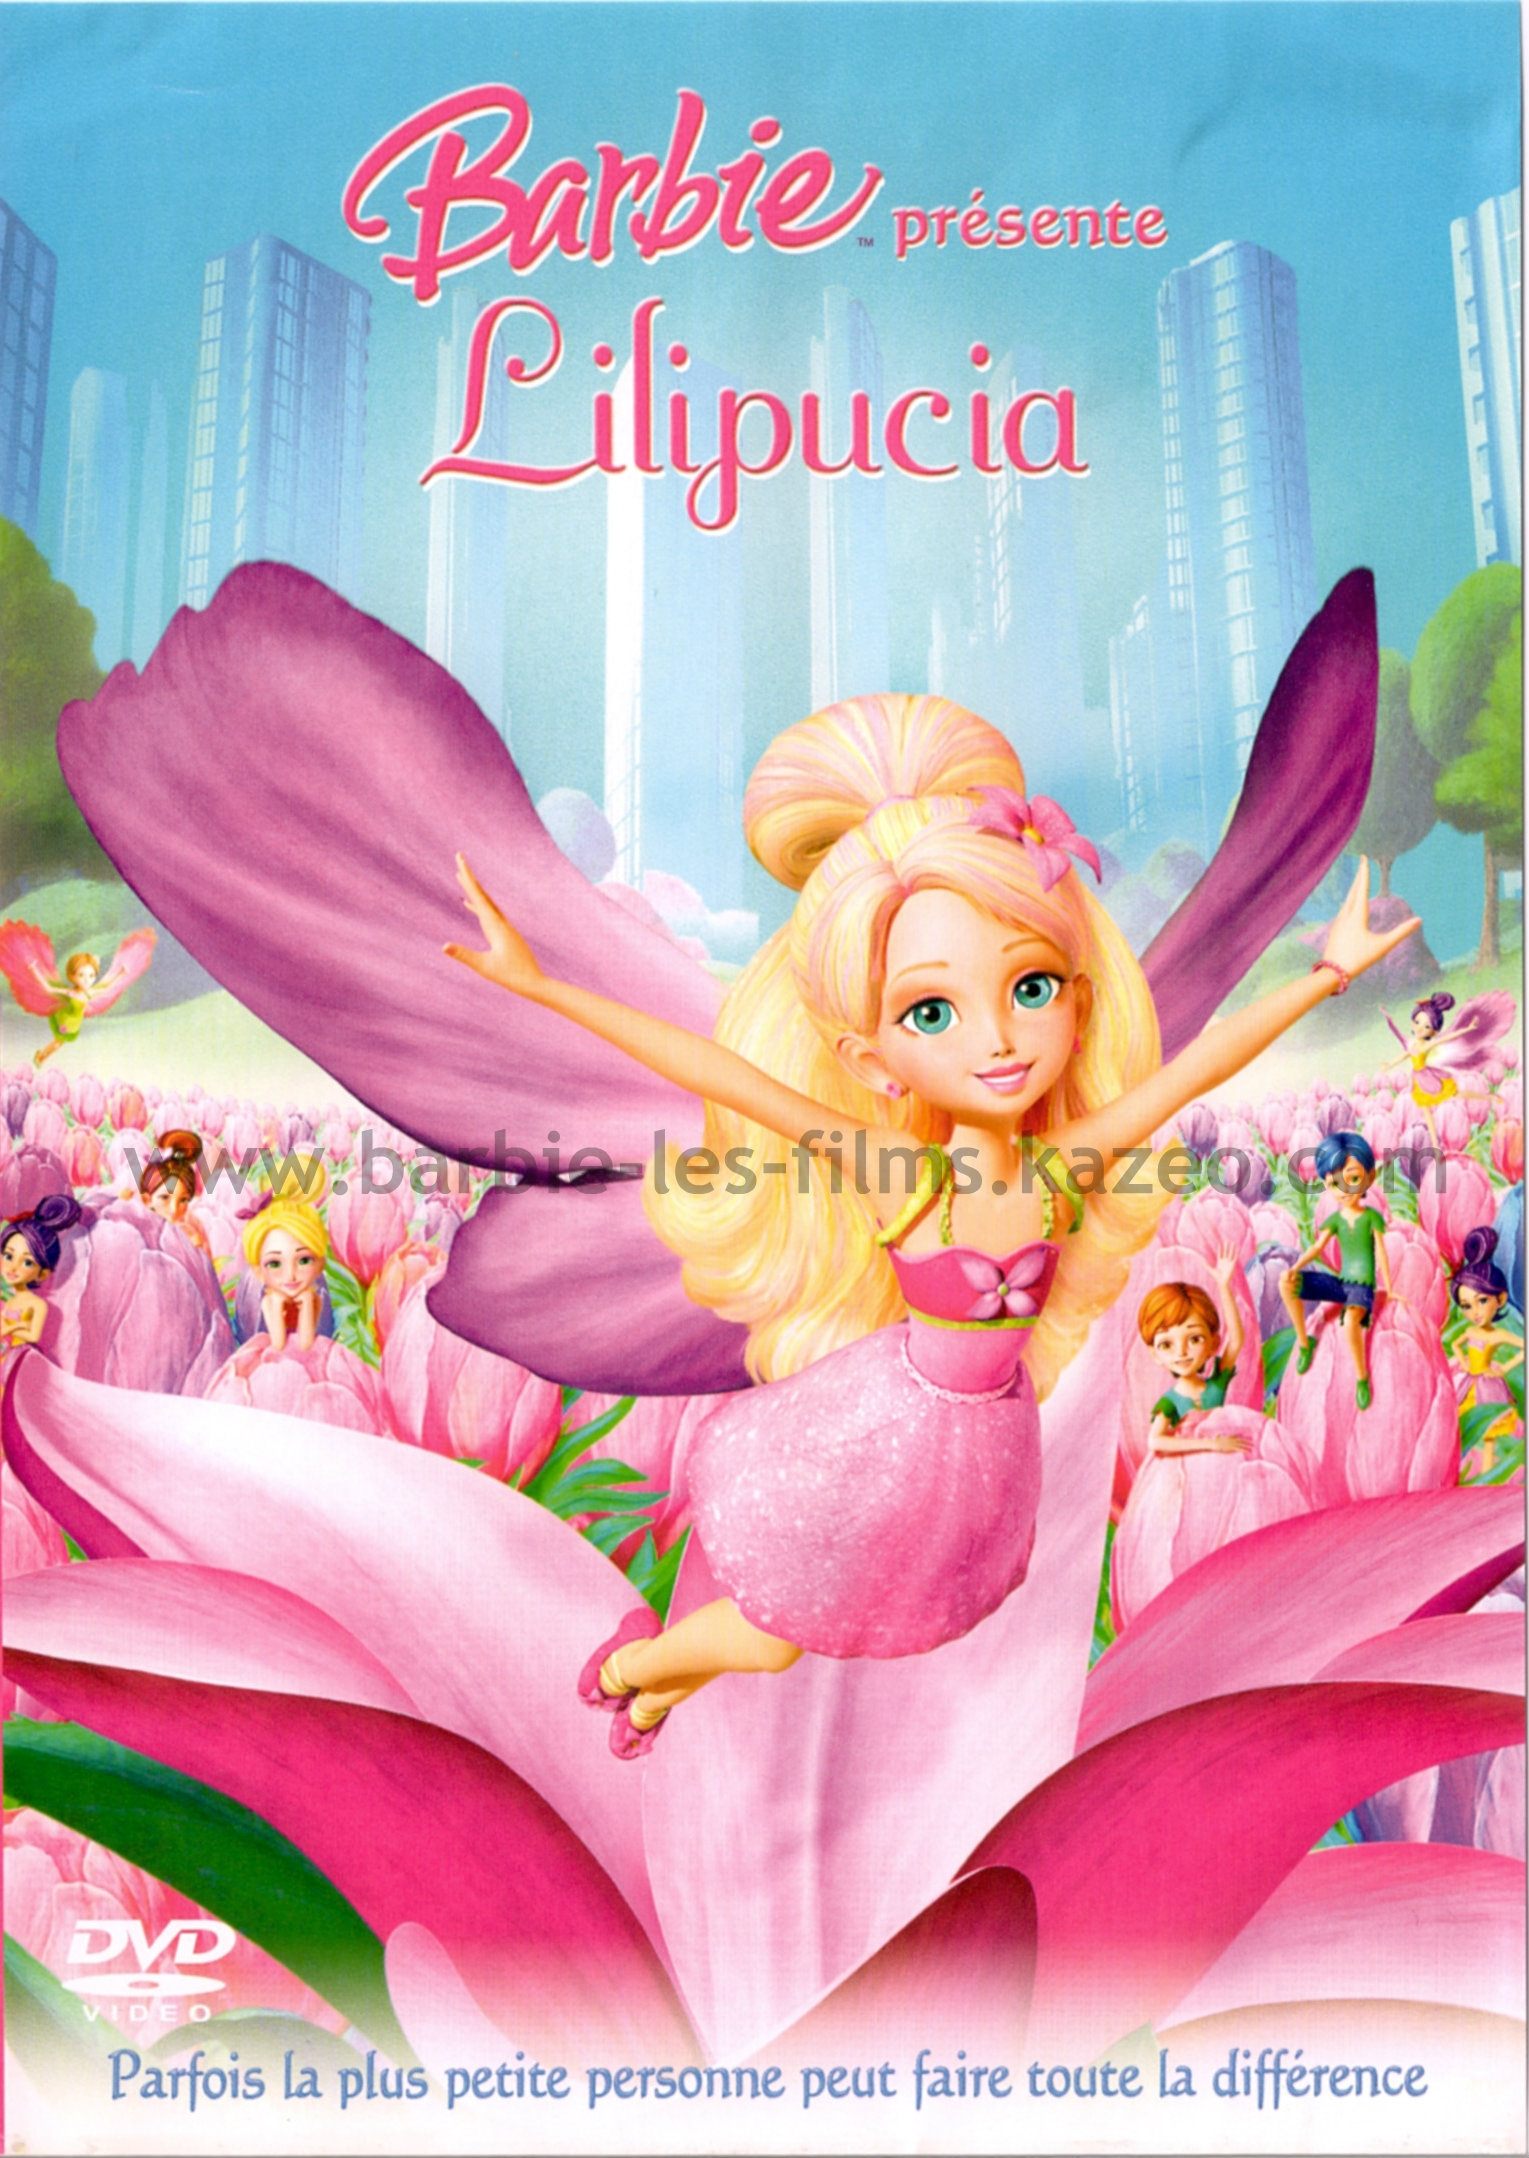 Barbie_lilipucia